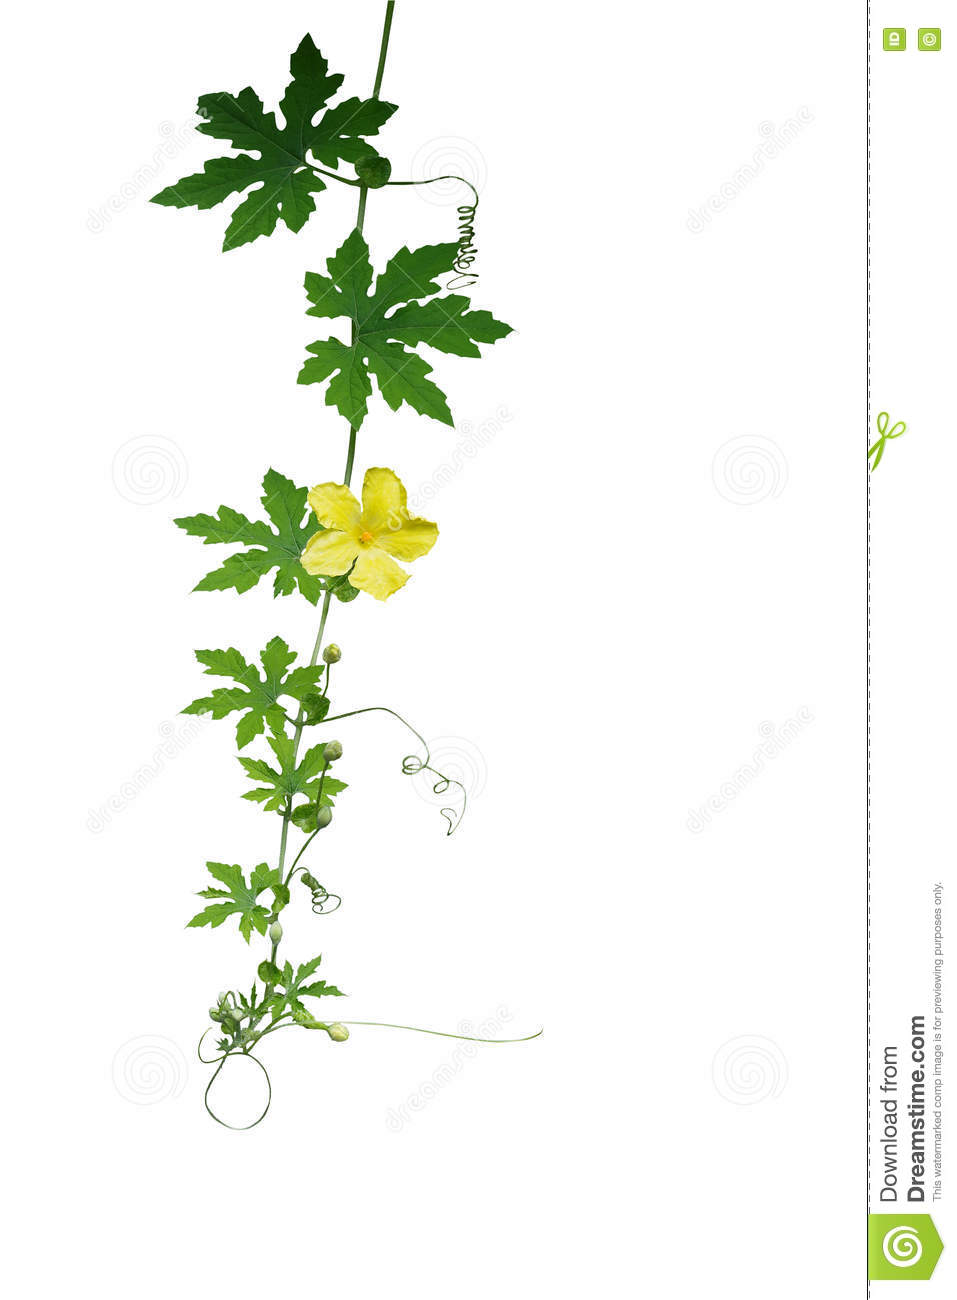 Green Leaves Climbing Vine With Tendrils And Yellow Flower Isola